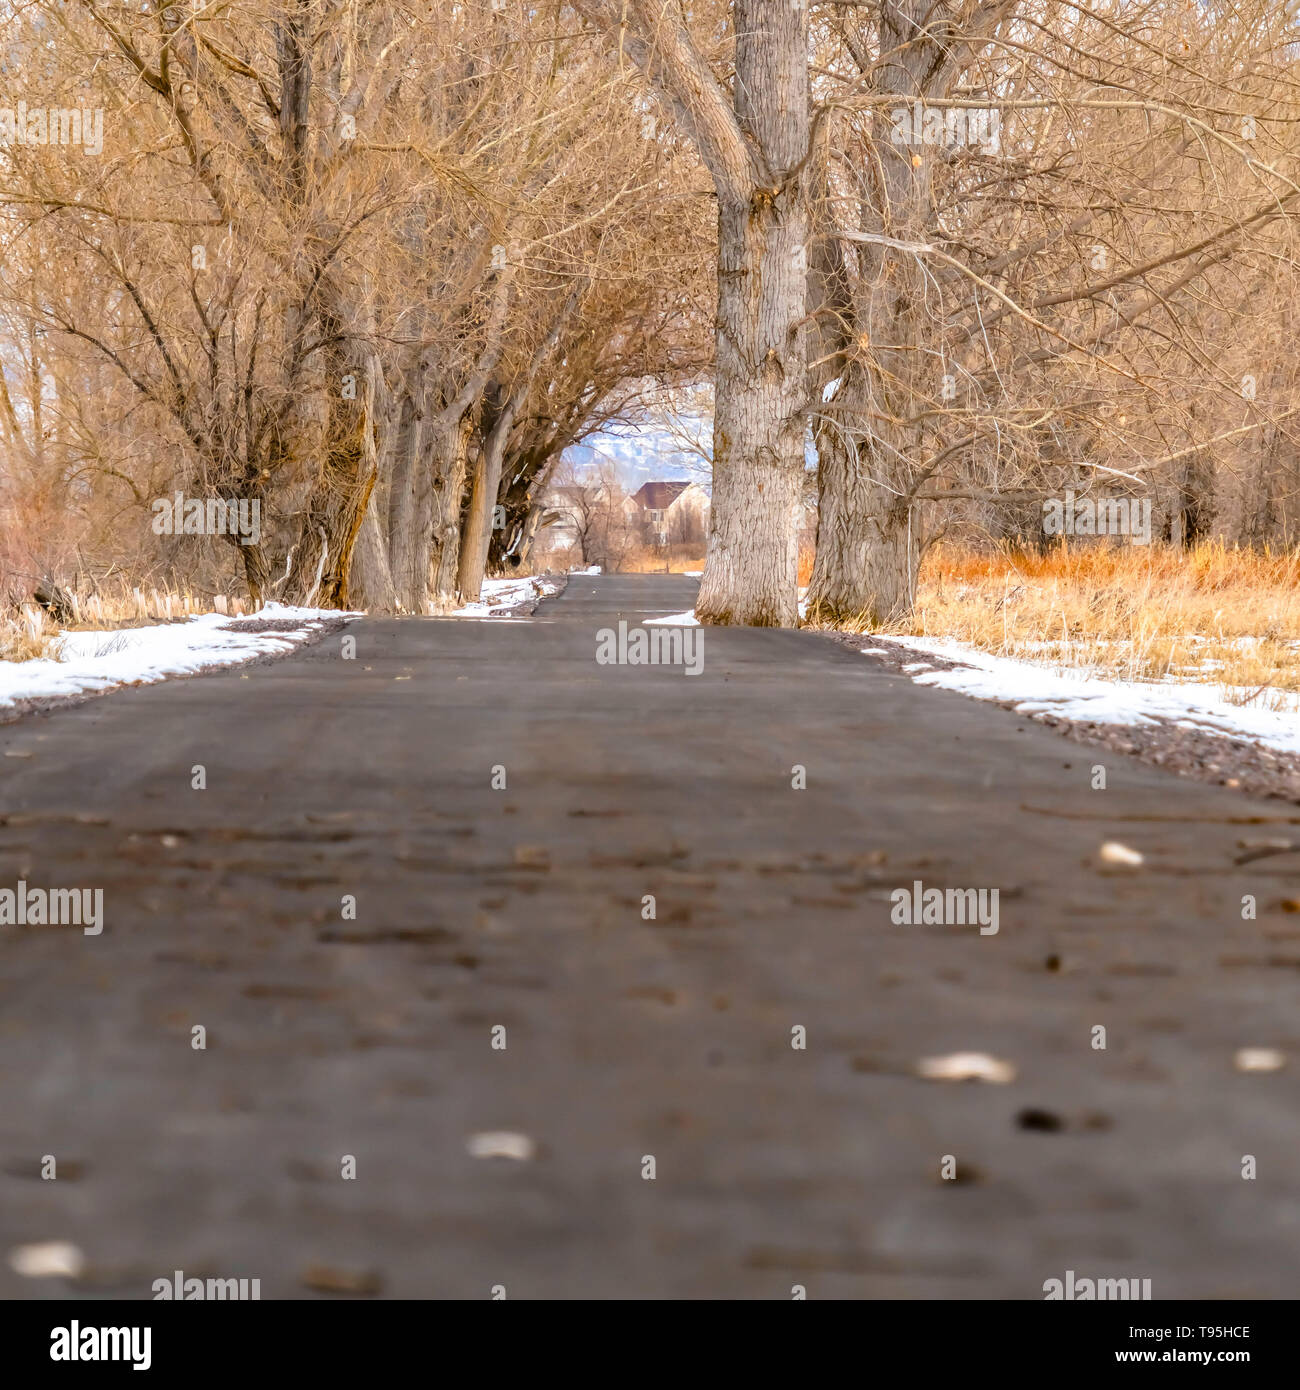 Clear Square Paved road amid a snowy terrain with tall leafless hibernating trees in winter - Stock Image